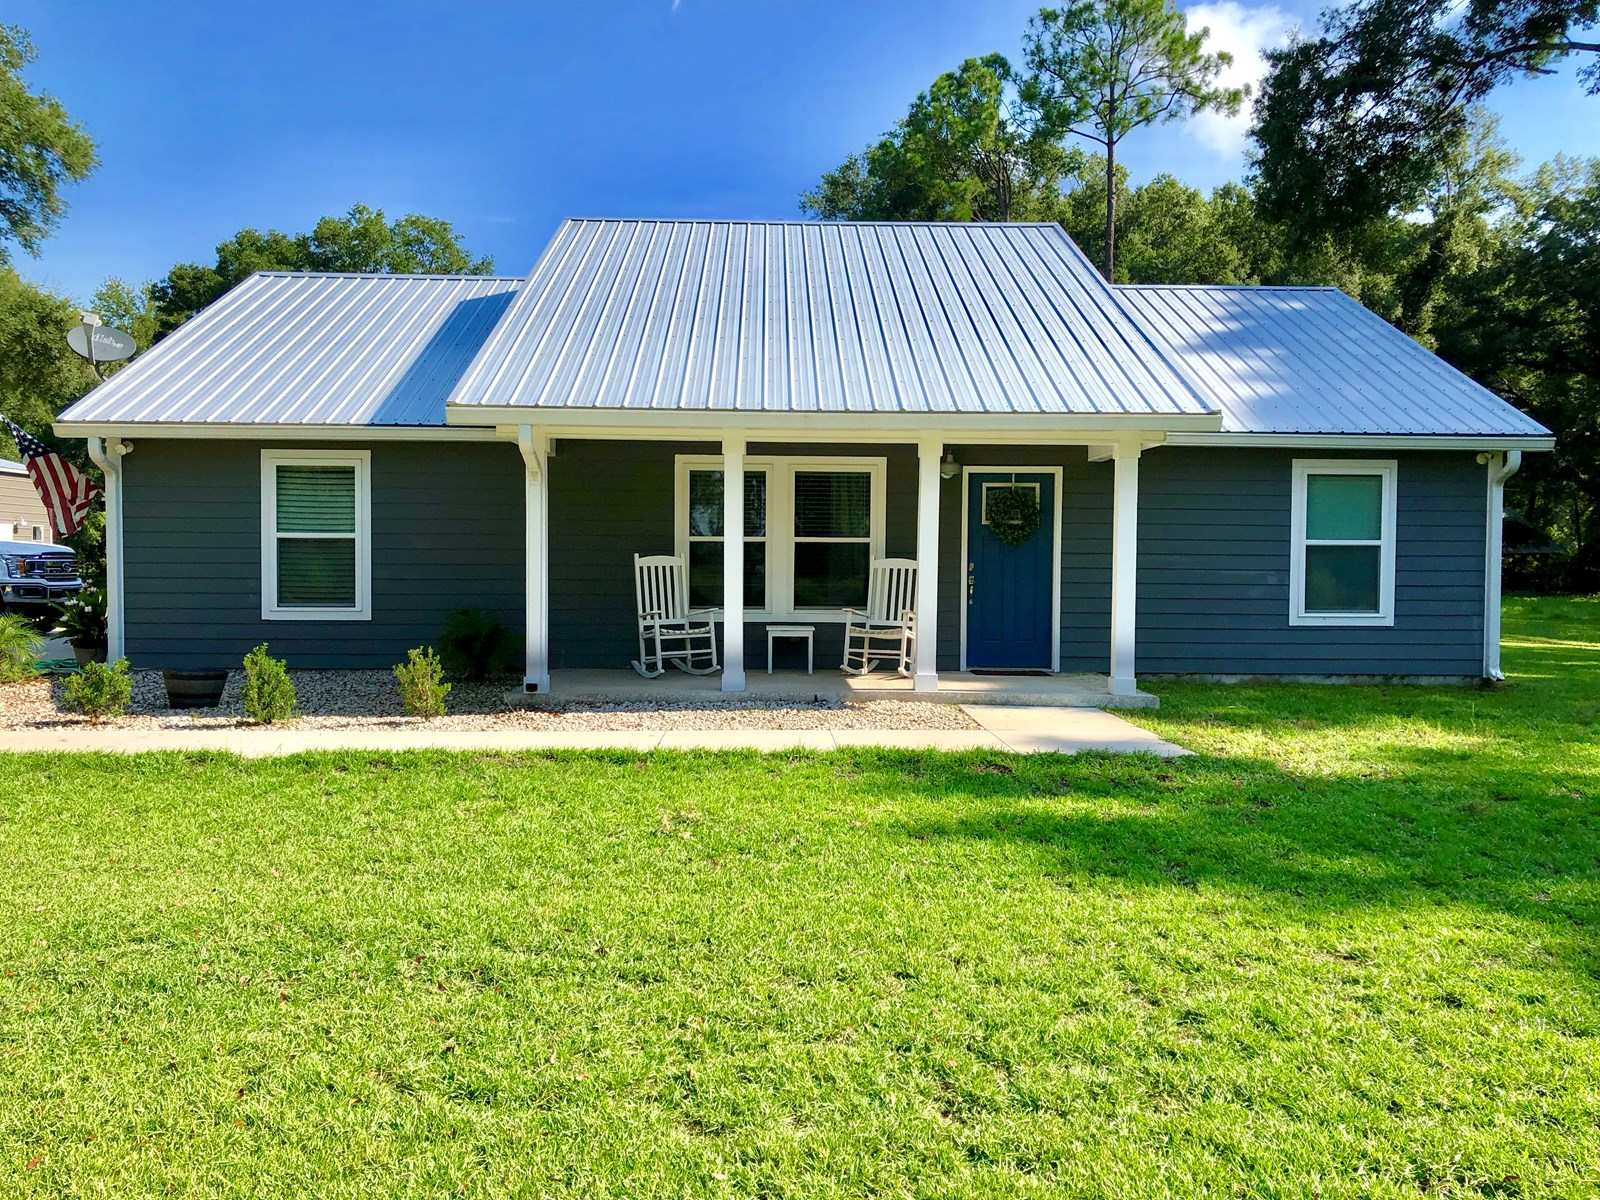 Country home on 5 acres in Gilchrist County, FL